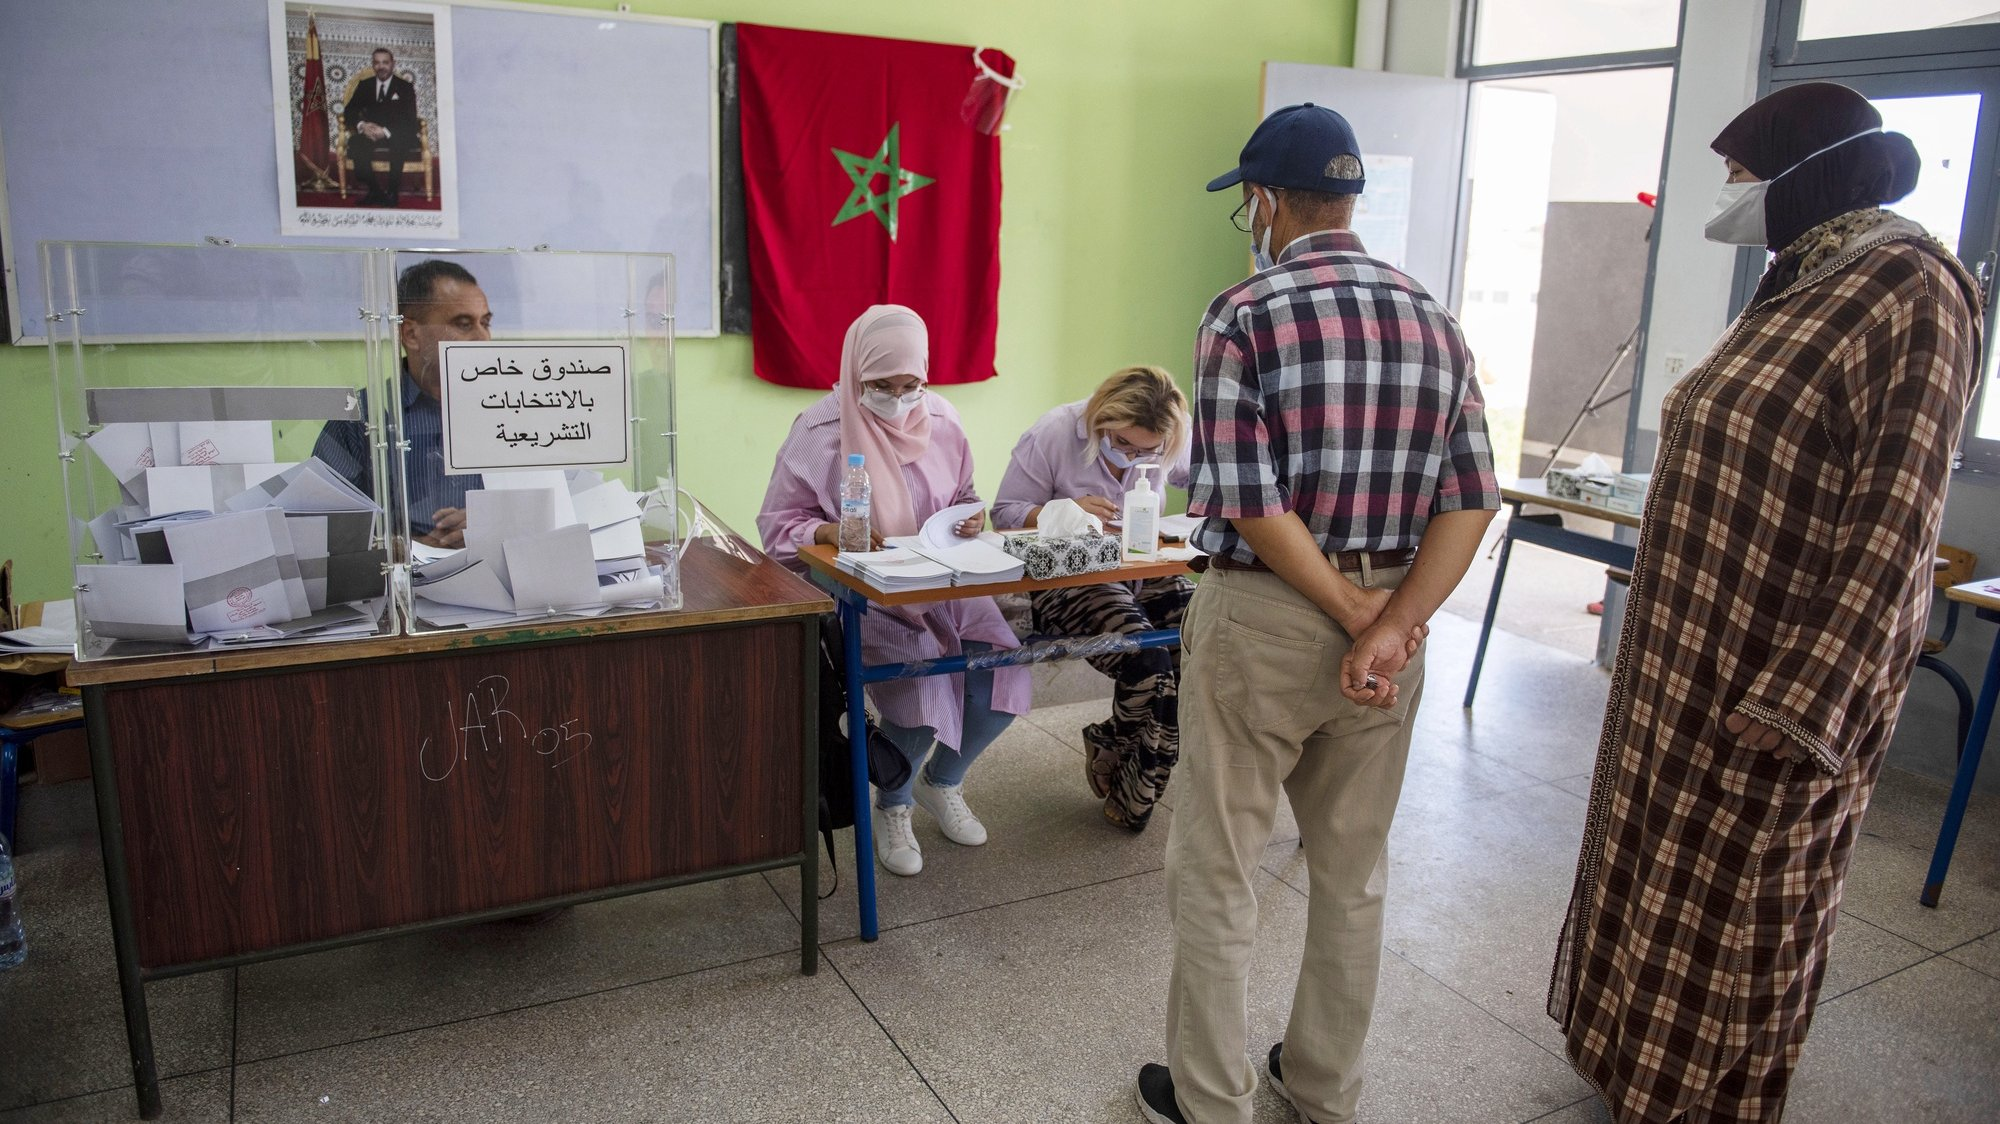 epa09455161 A voter prepares to cast a ballot for the parliamentary elections at a polling station in Sale, Morocco, 08 September 2021. Moroccans were called to vote in parliamentary and local elections.  EPA/JALAL MORCHIDI